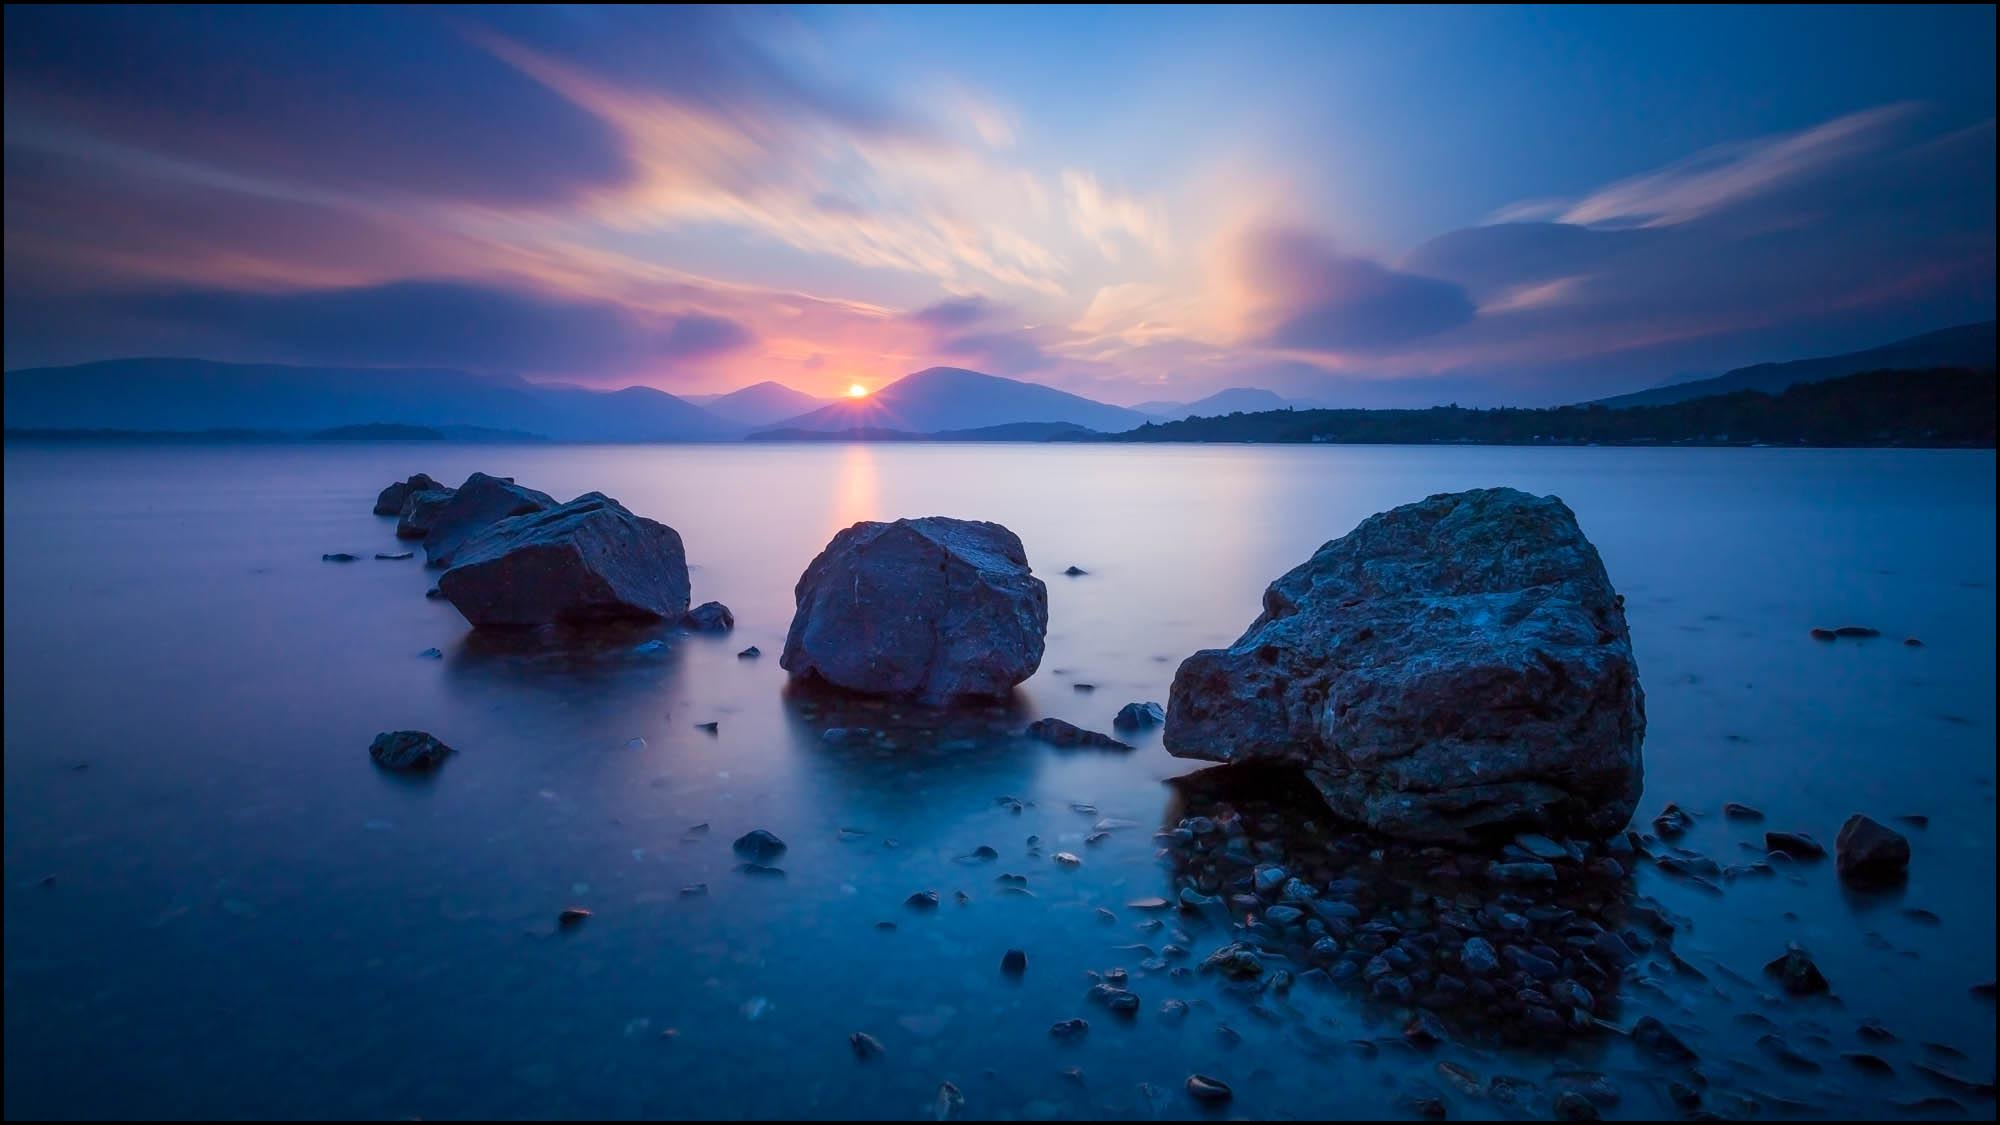 Lesson 1 - Introduction to Long Exposure Photography - Here we introduce the course, tell you what you will learn and view the visual effects that can be created in this field of photography.